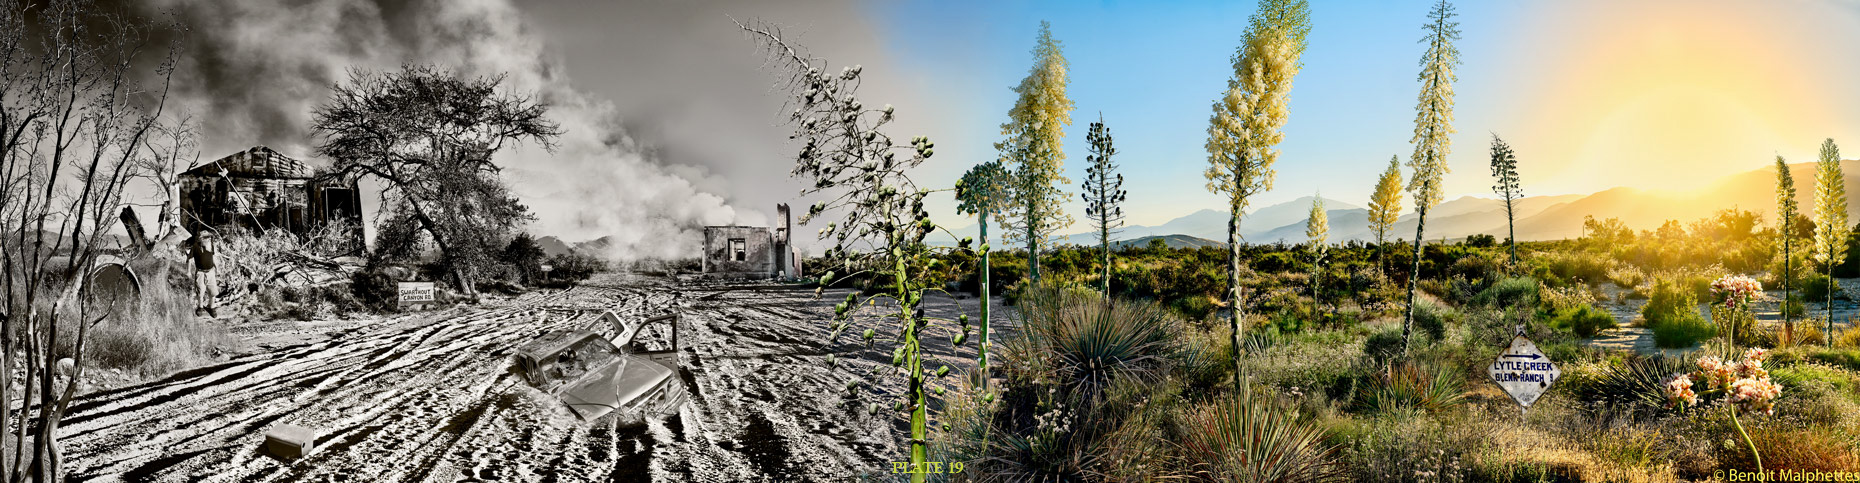 Photographic composite illustrating the Blue Cut Fire from devastation to  renewal